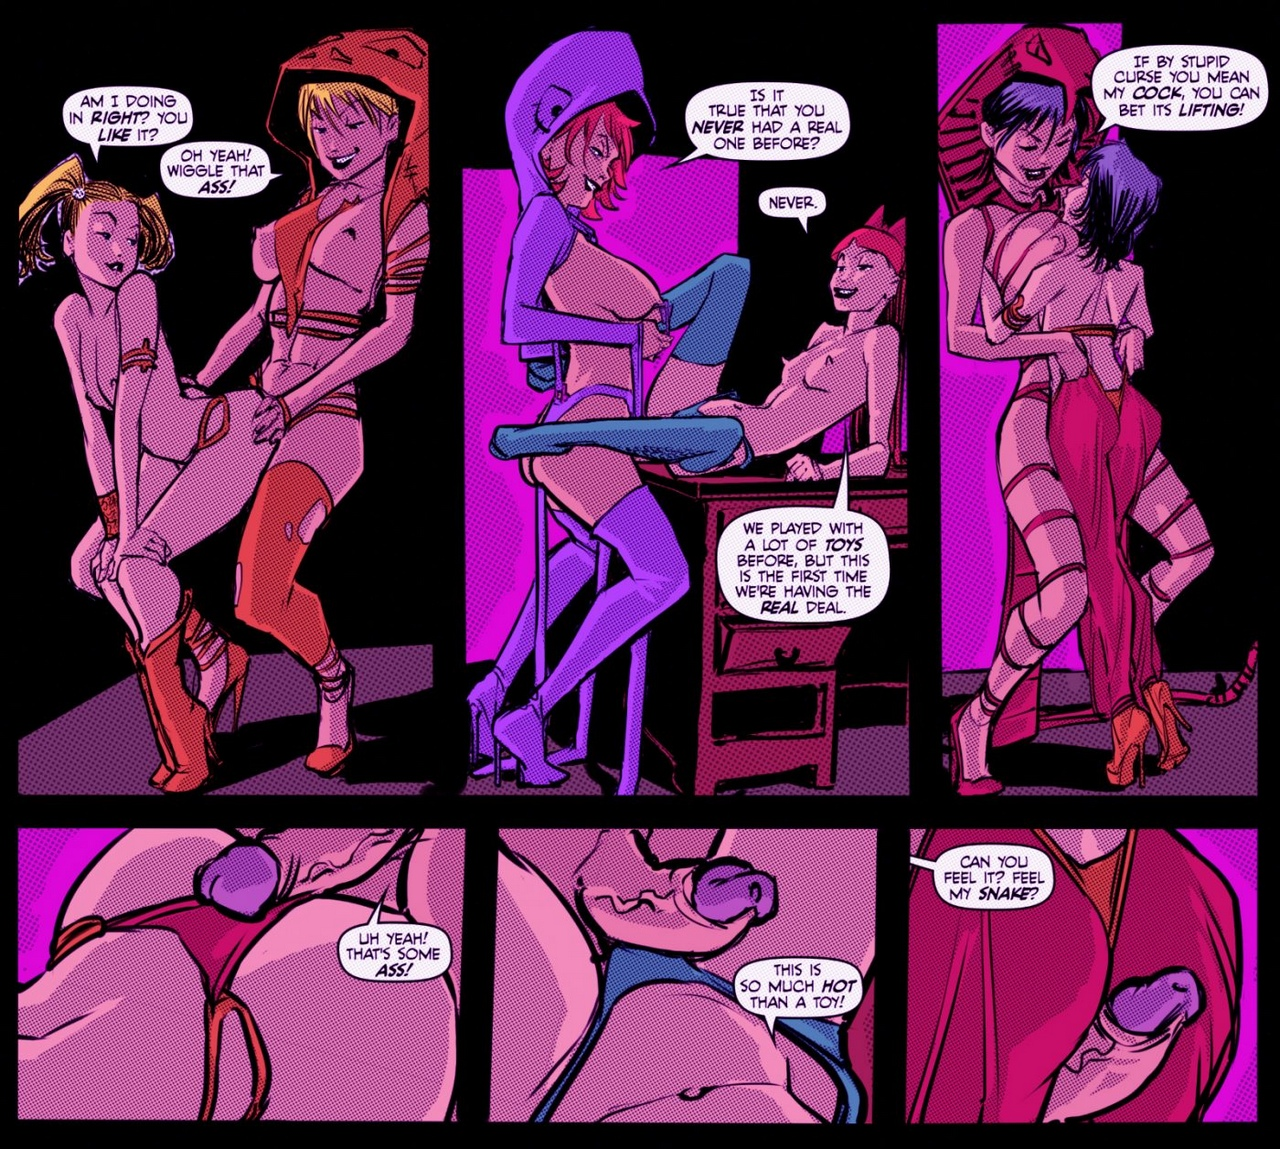 Dick-Or-Treat 17 free sex comic